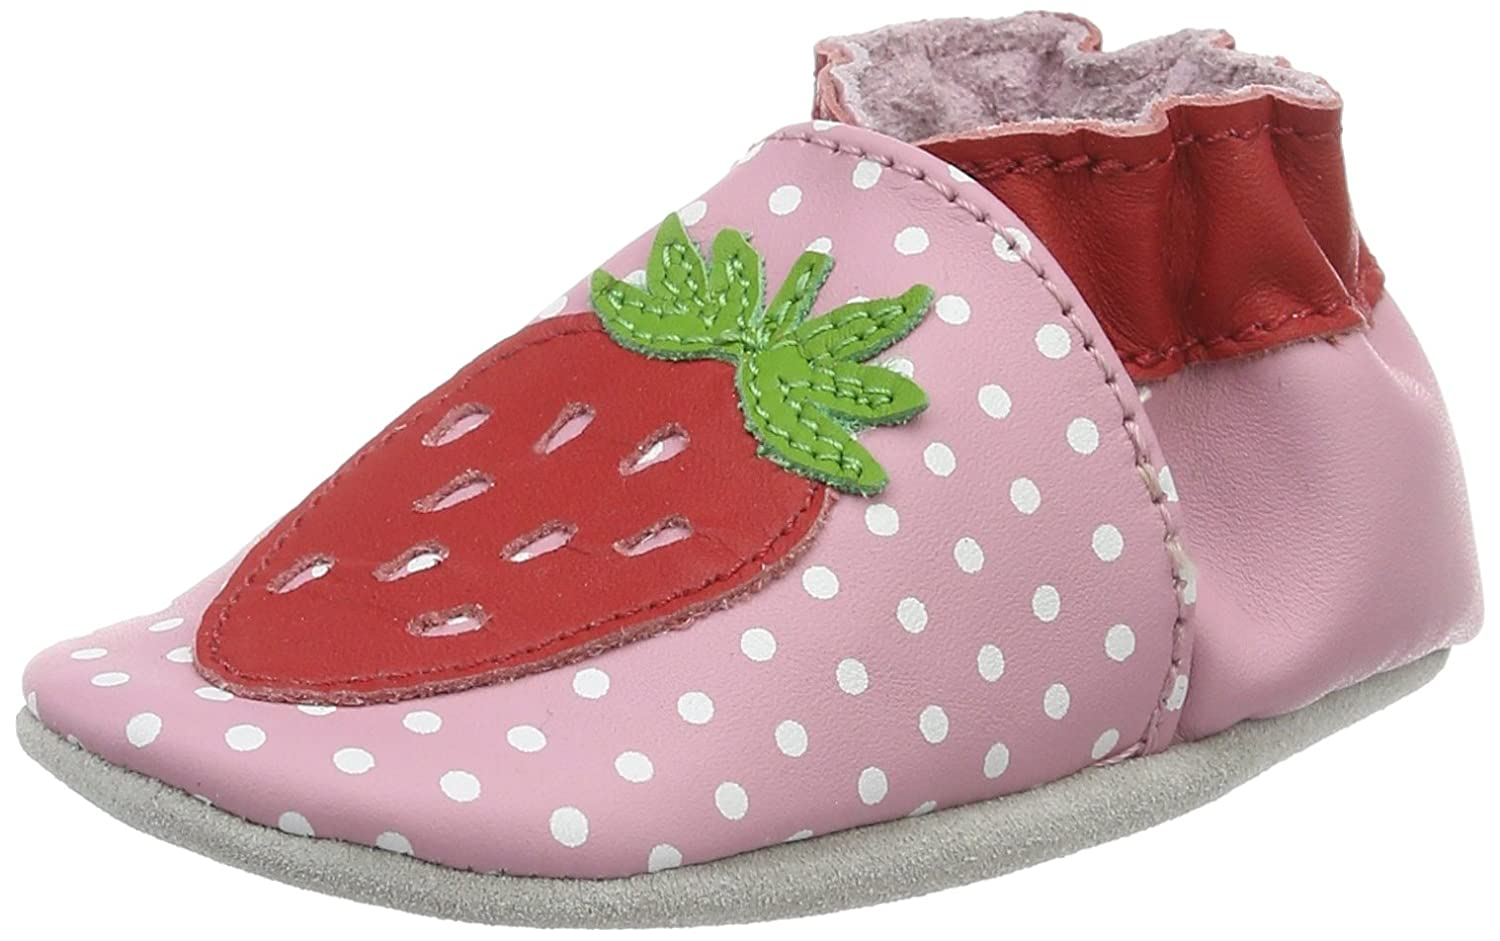 Robeez Baby Girls' Lily Fraise Slippers Red (Rose Clair 131) 17/18 17/18 EU 547610-10